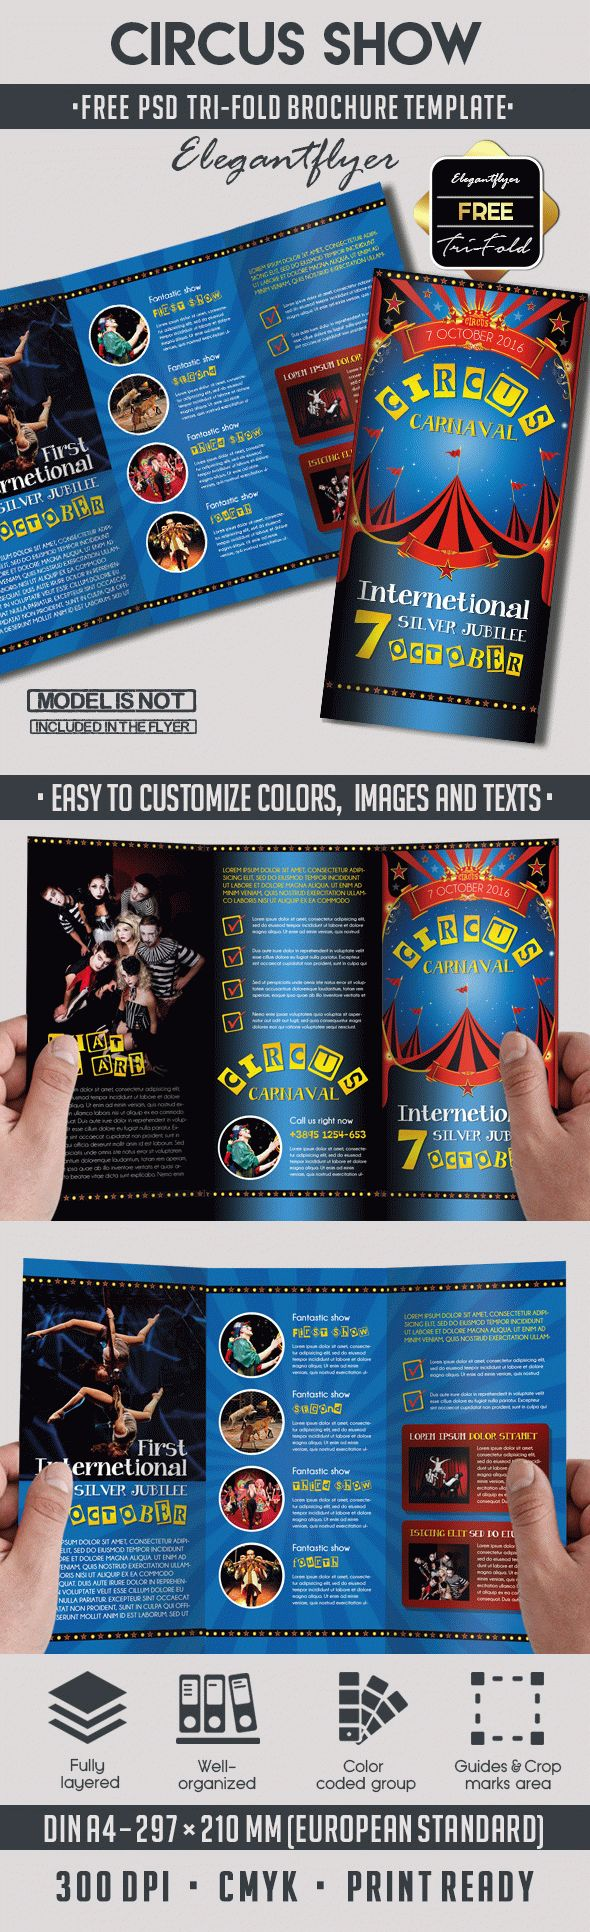 Circus free psd tri fold psd brochure template by for Free flyer brochure templates